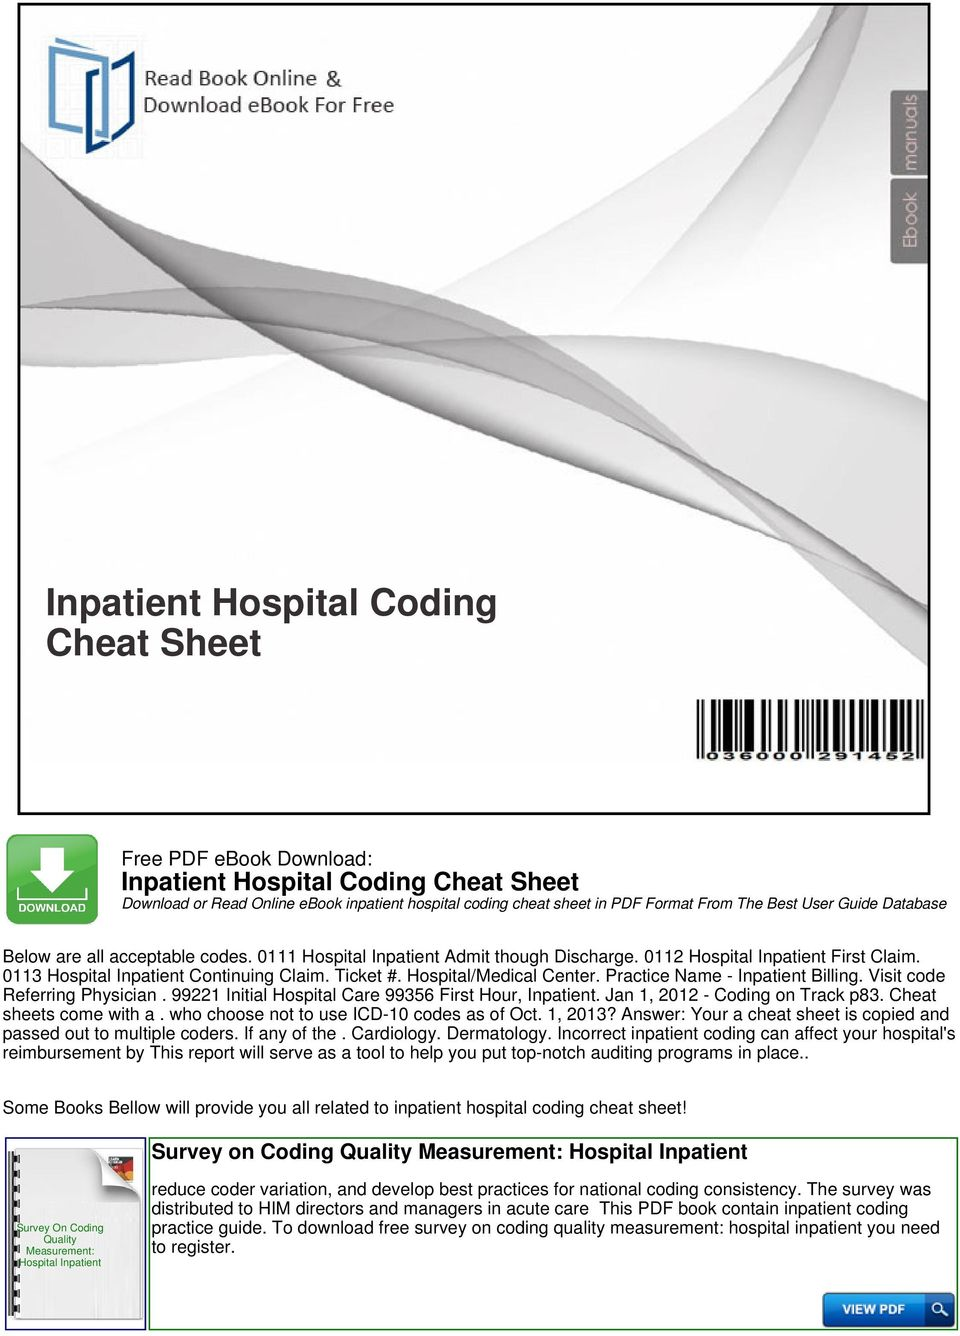 Inpatient hospital coding cheat sheet pdf visit code referring physician 99221 initial hospital care 99356 first hour inpatient jan 2 pcp coding cheat sheet fandeluxe Image collections